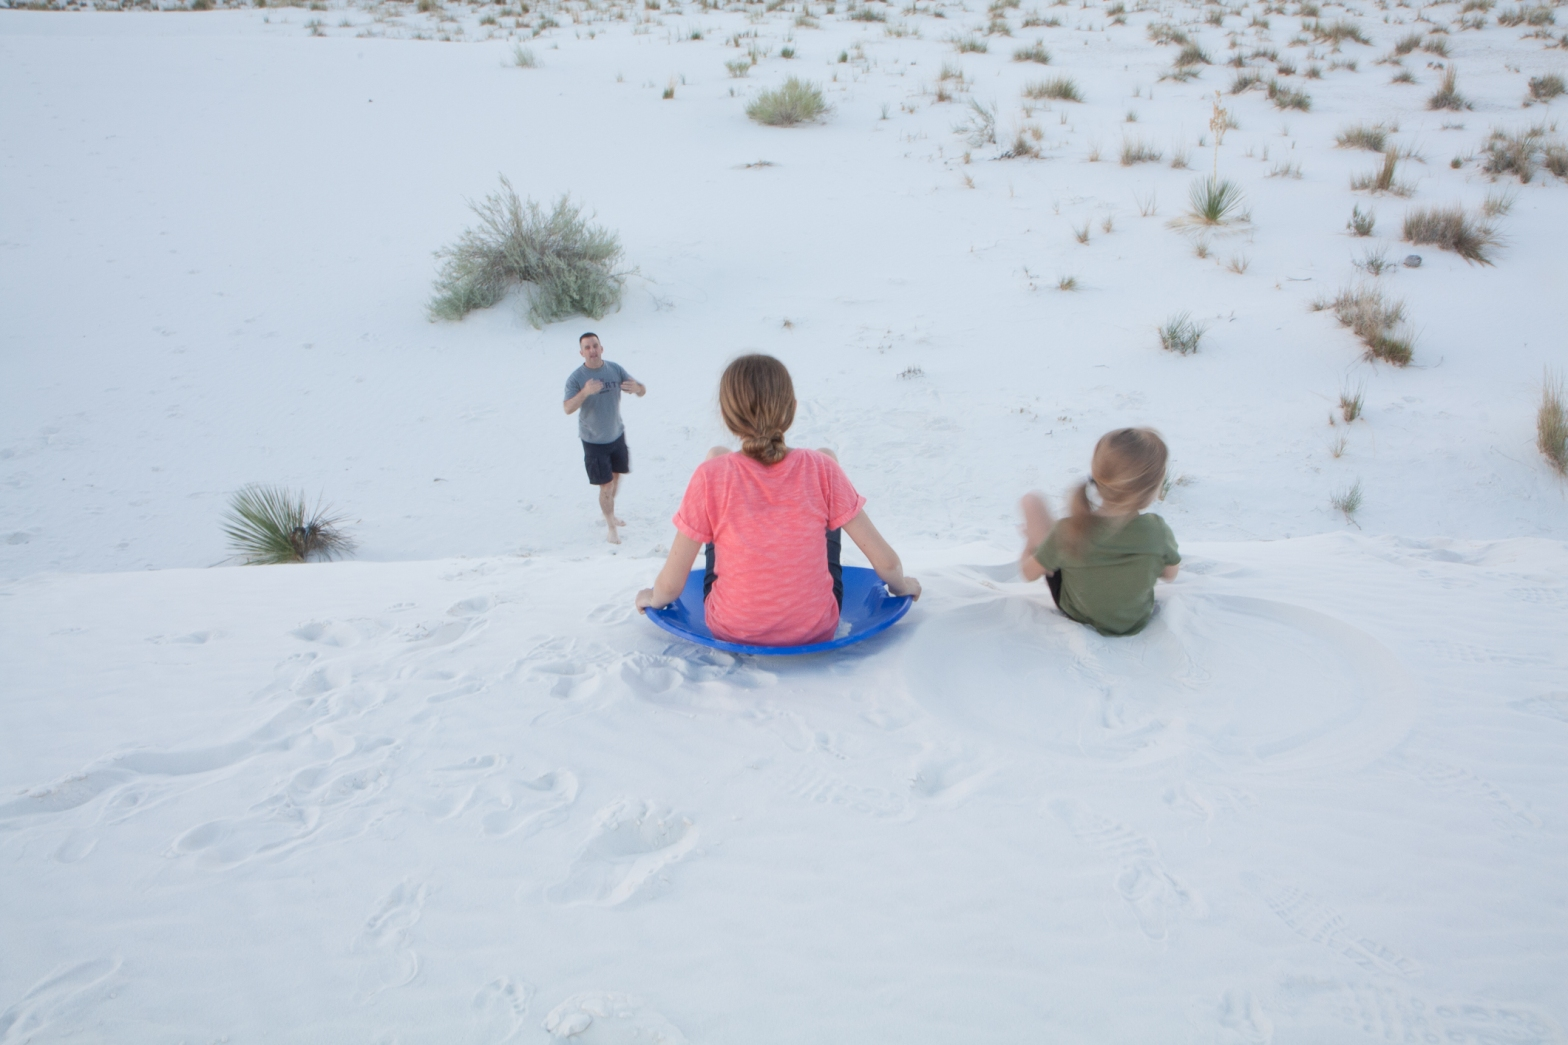 Sledding at White Sands